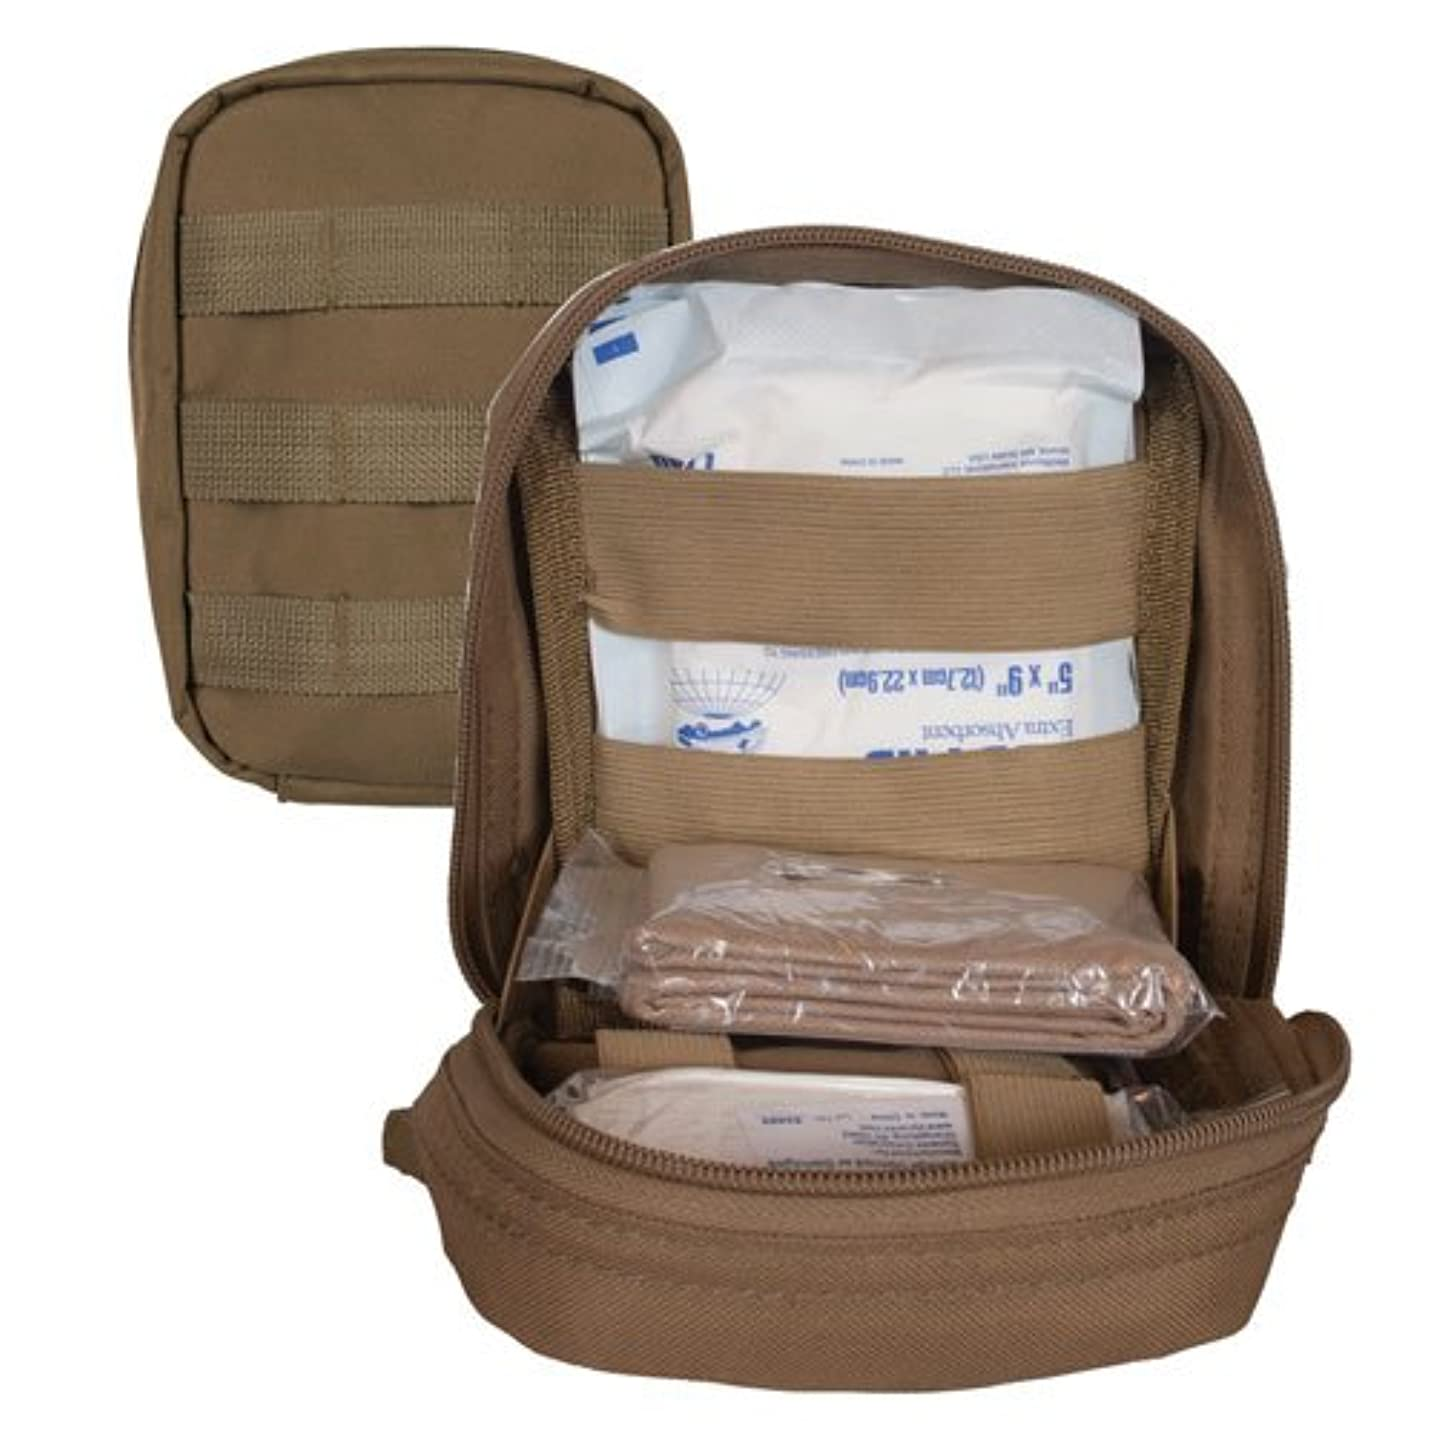 Fox Outdoor Products Large Modular first aid kit